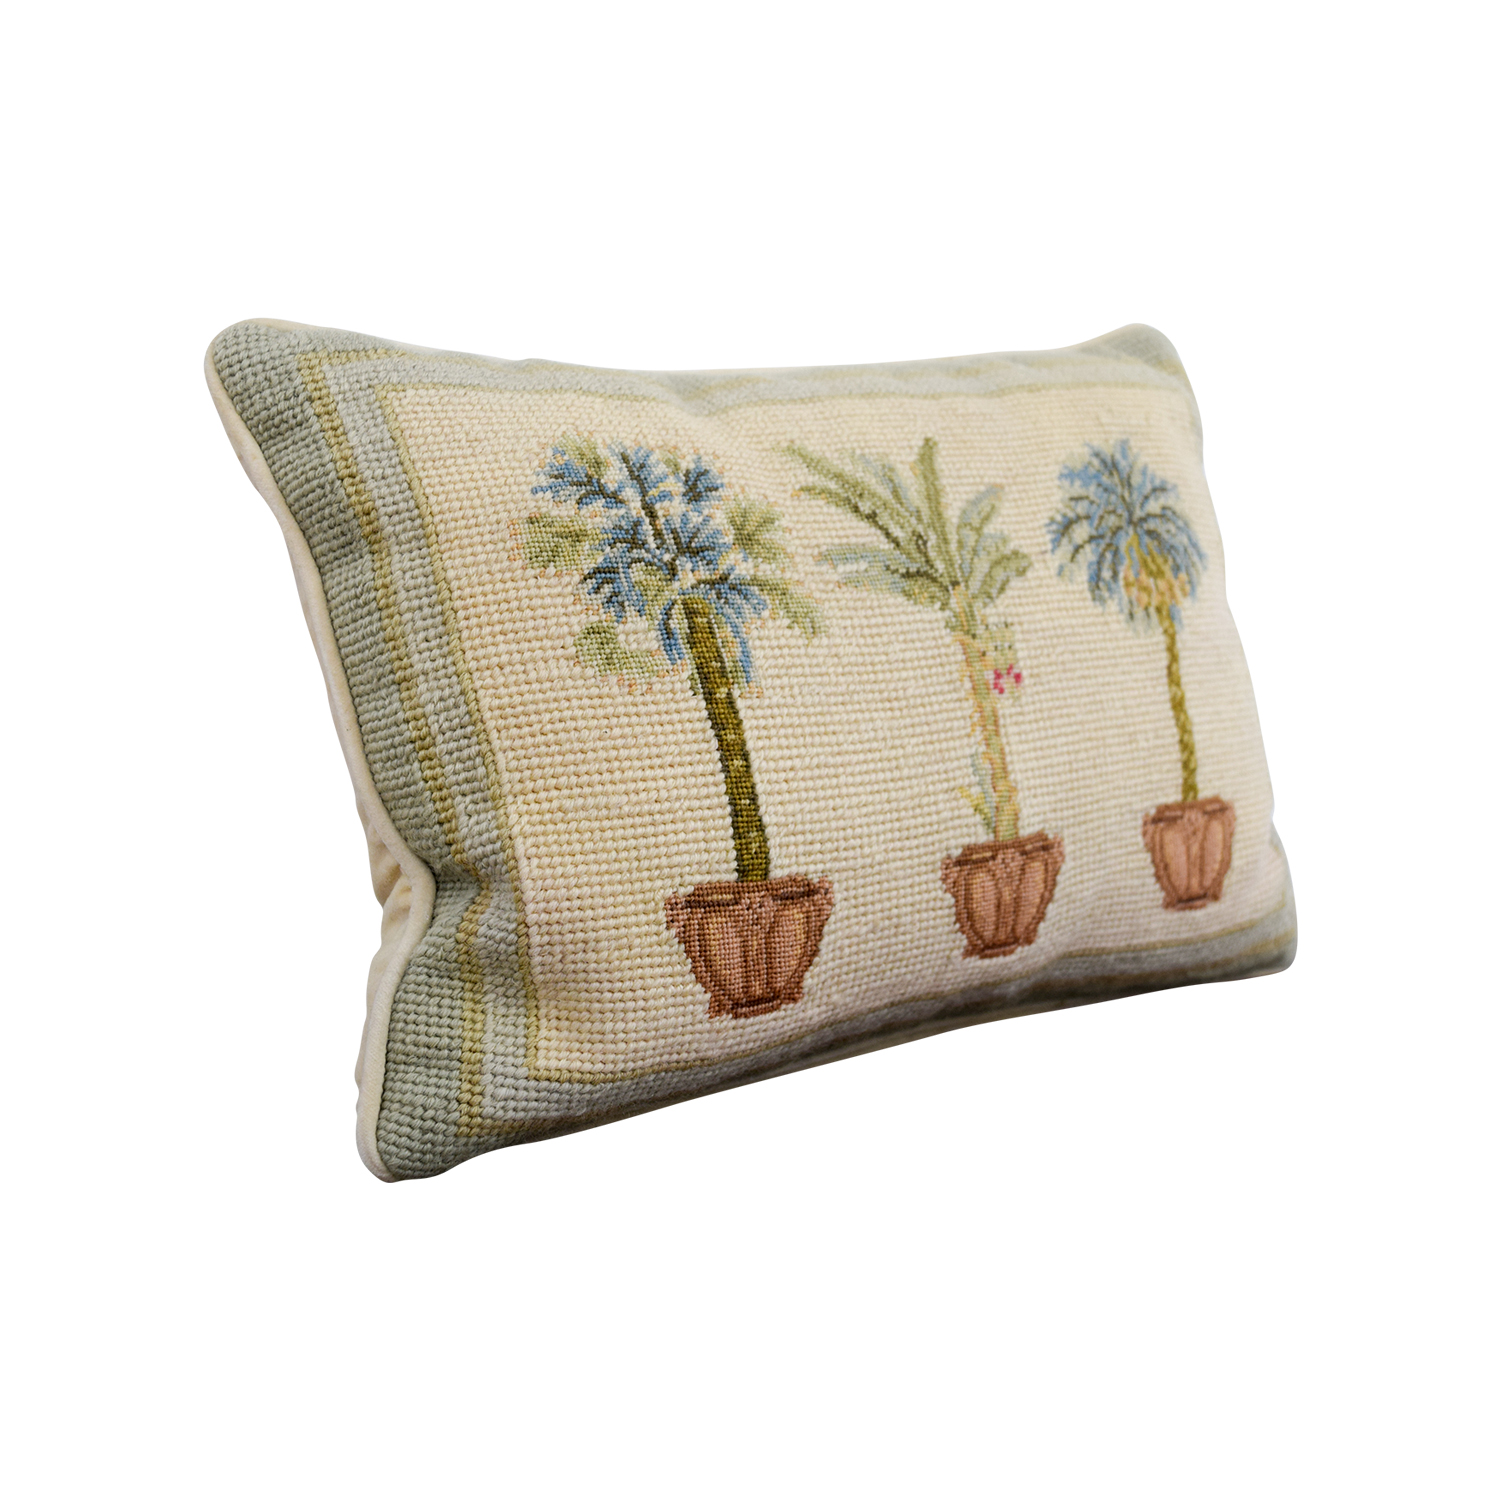 shop London Palm Trees Needlepoint Pillow London Decor